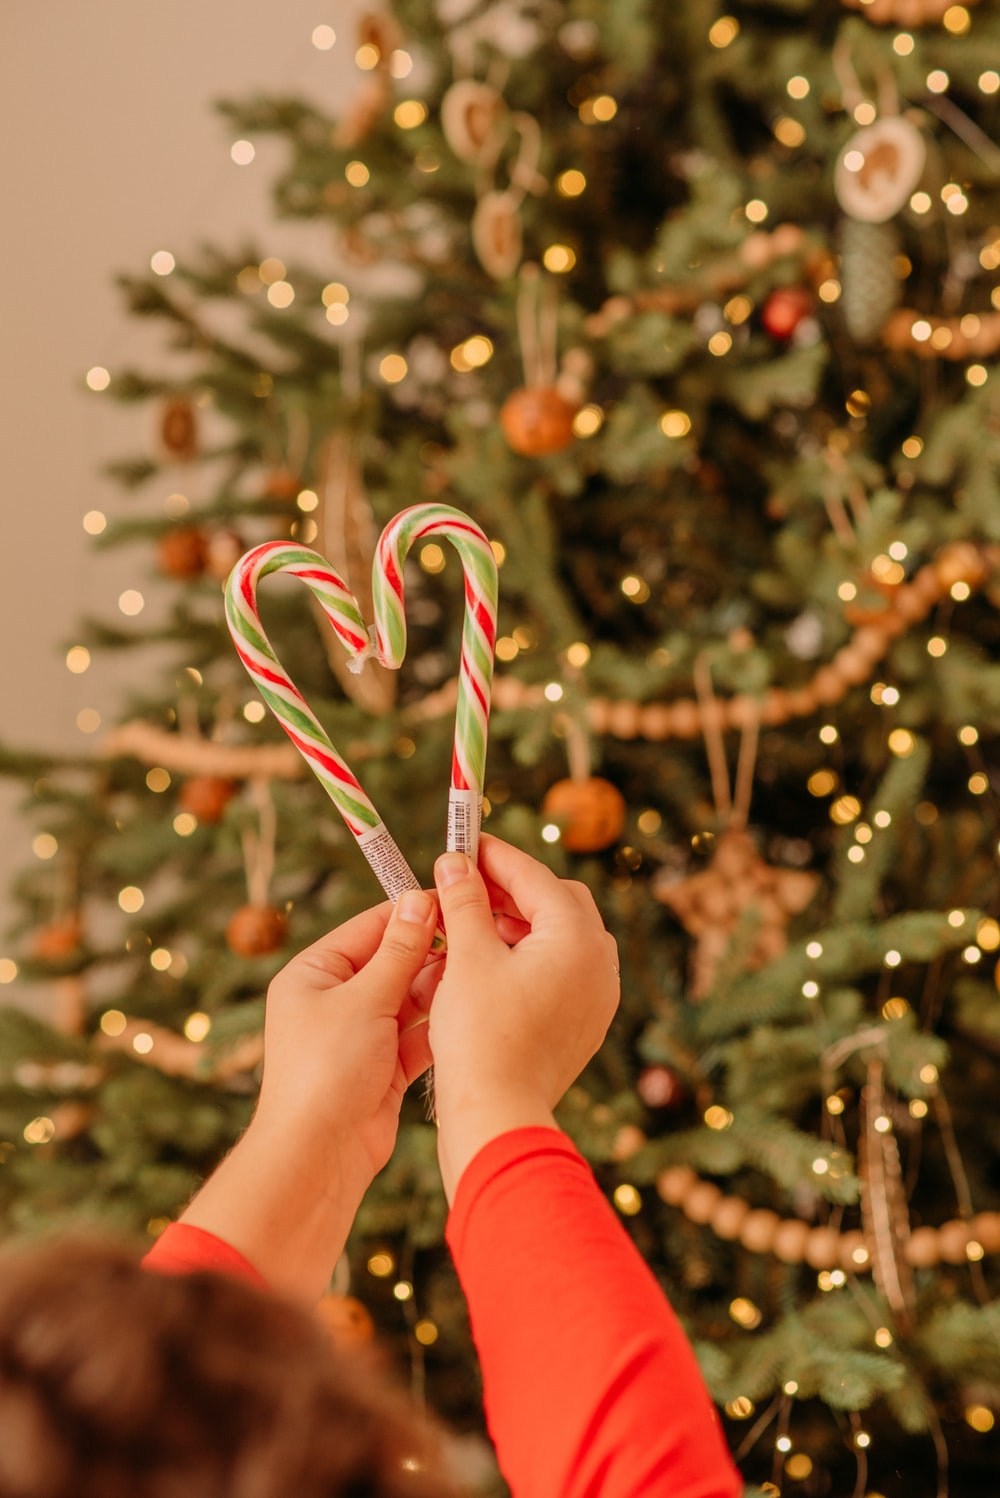 person holding red and white candy cane